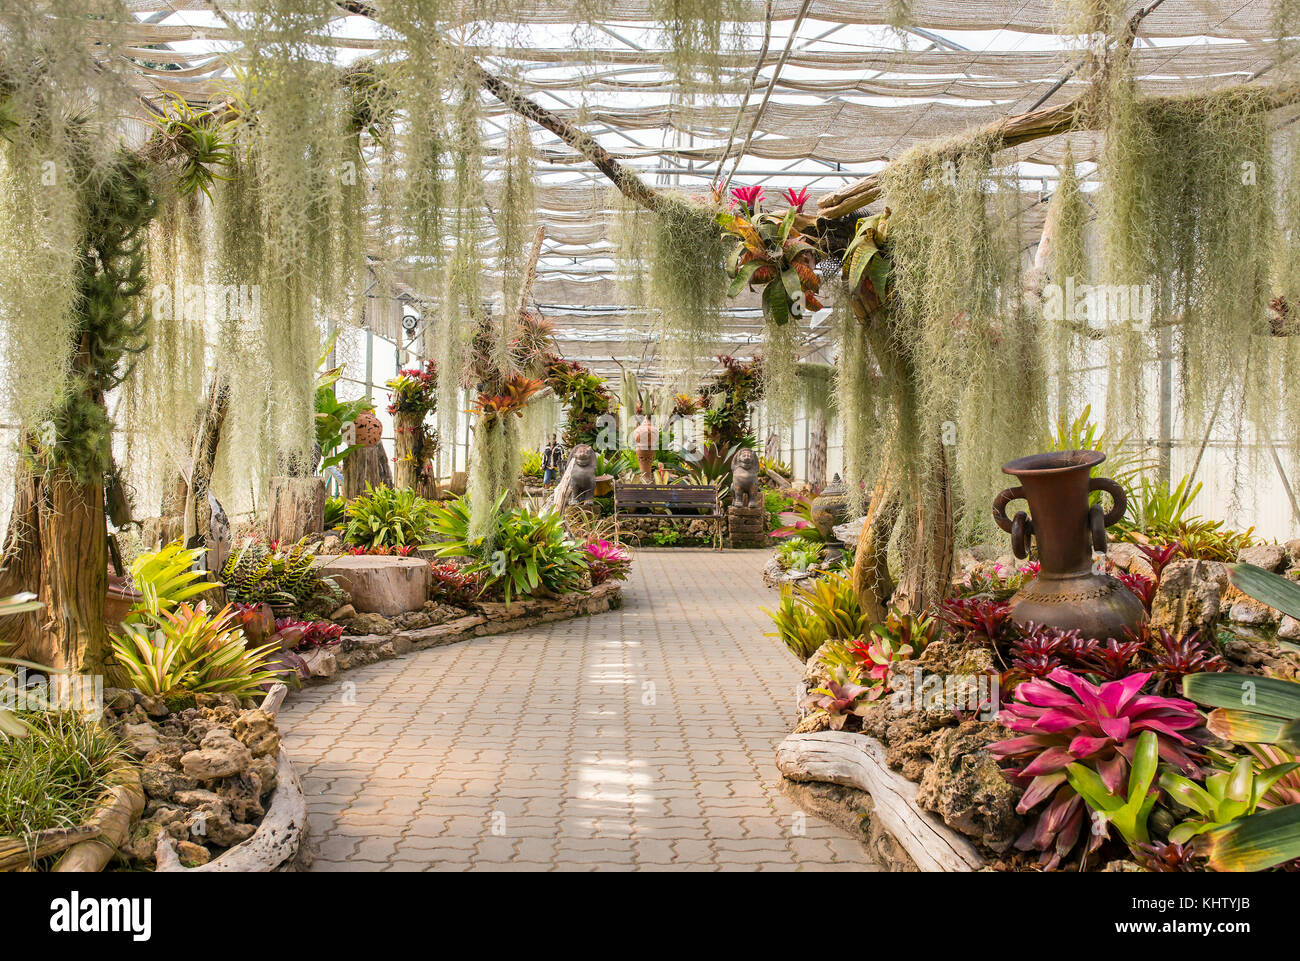 Asia Garten Ottobrunn Queen Sirikit Stock Photos Queen Sirikit Stock Images Alamy